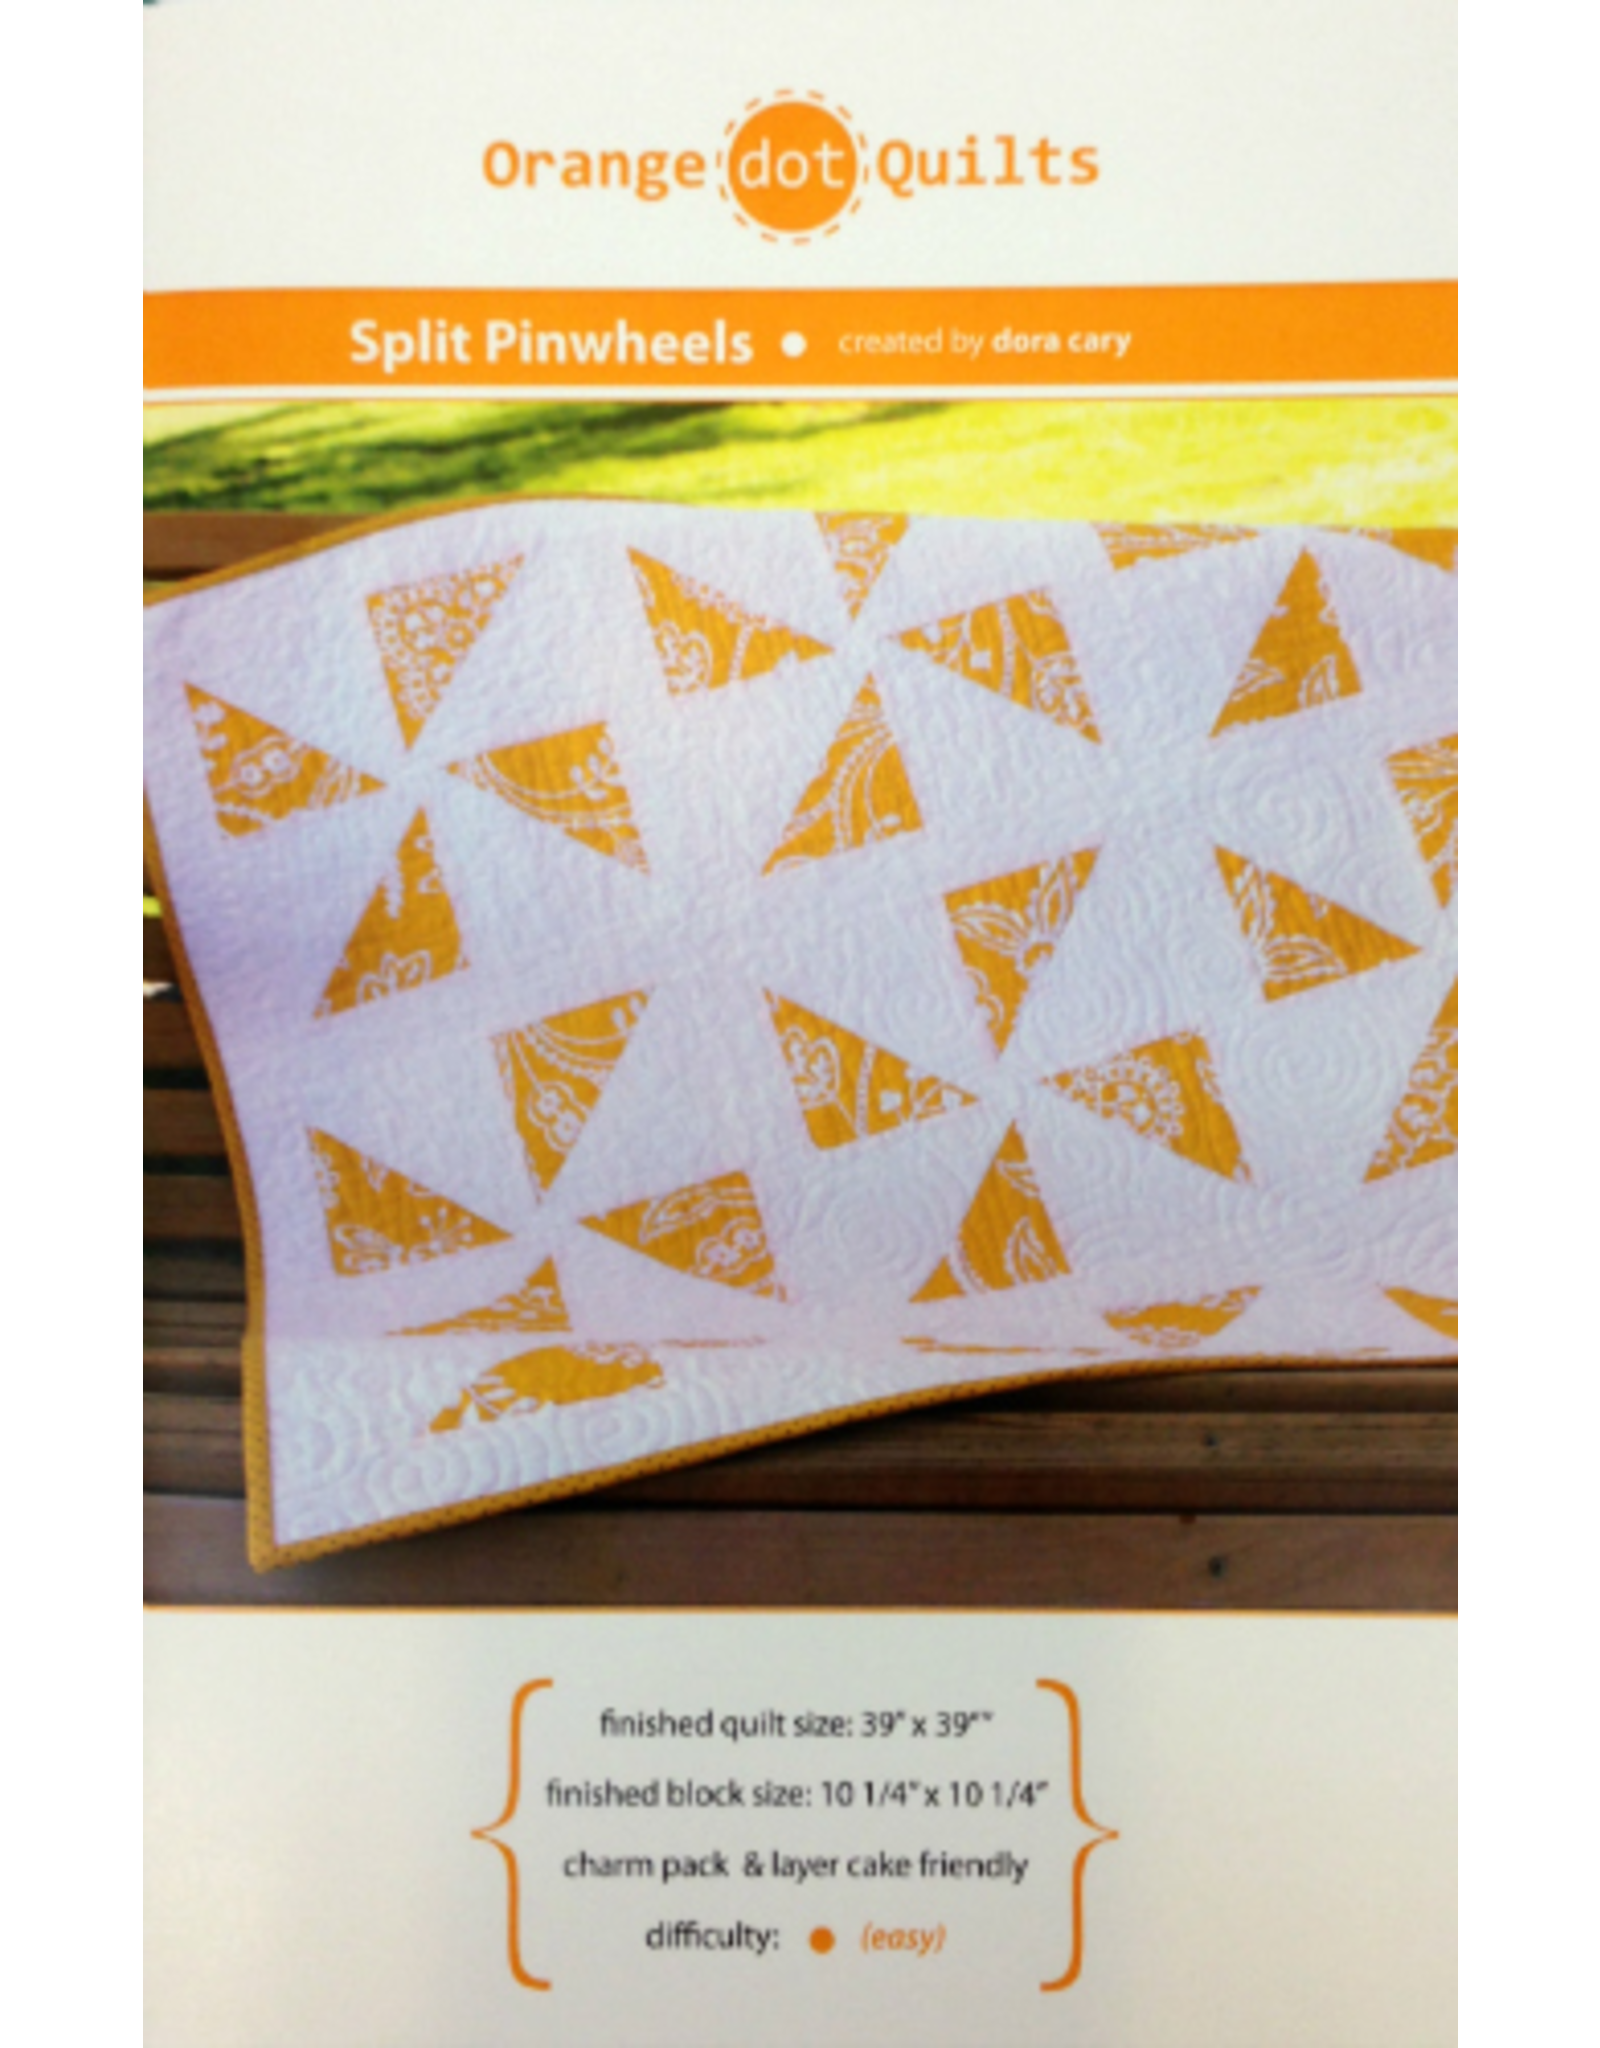 Orange Dot Quilts Orange Dot Quilt's Split Pinwheels Pattern